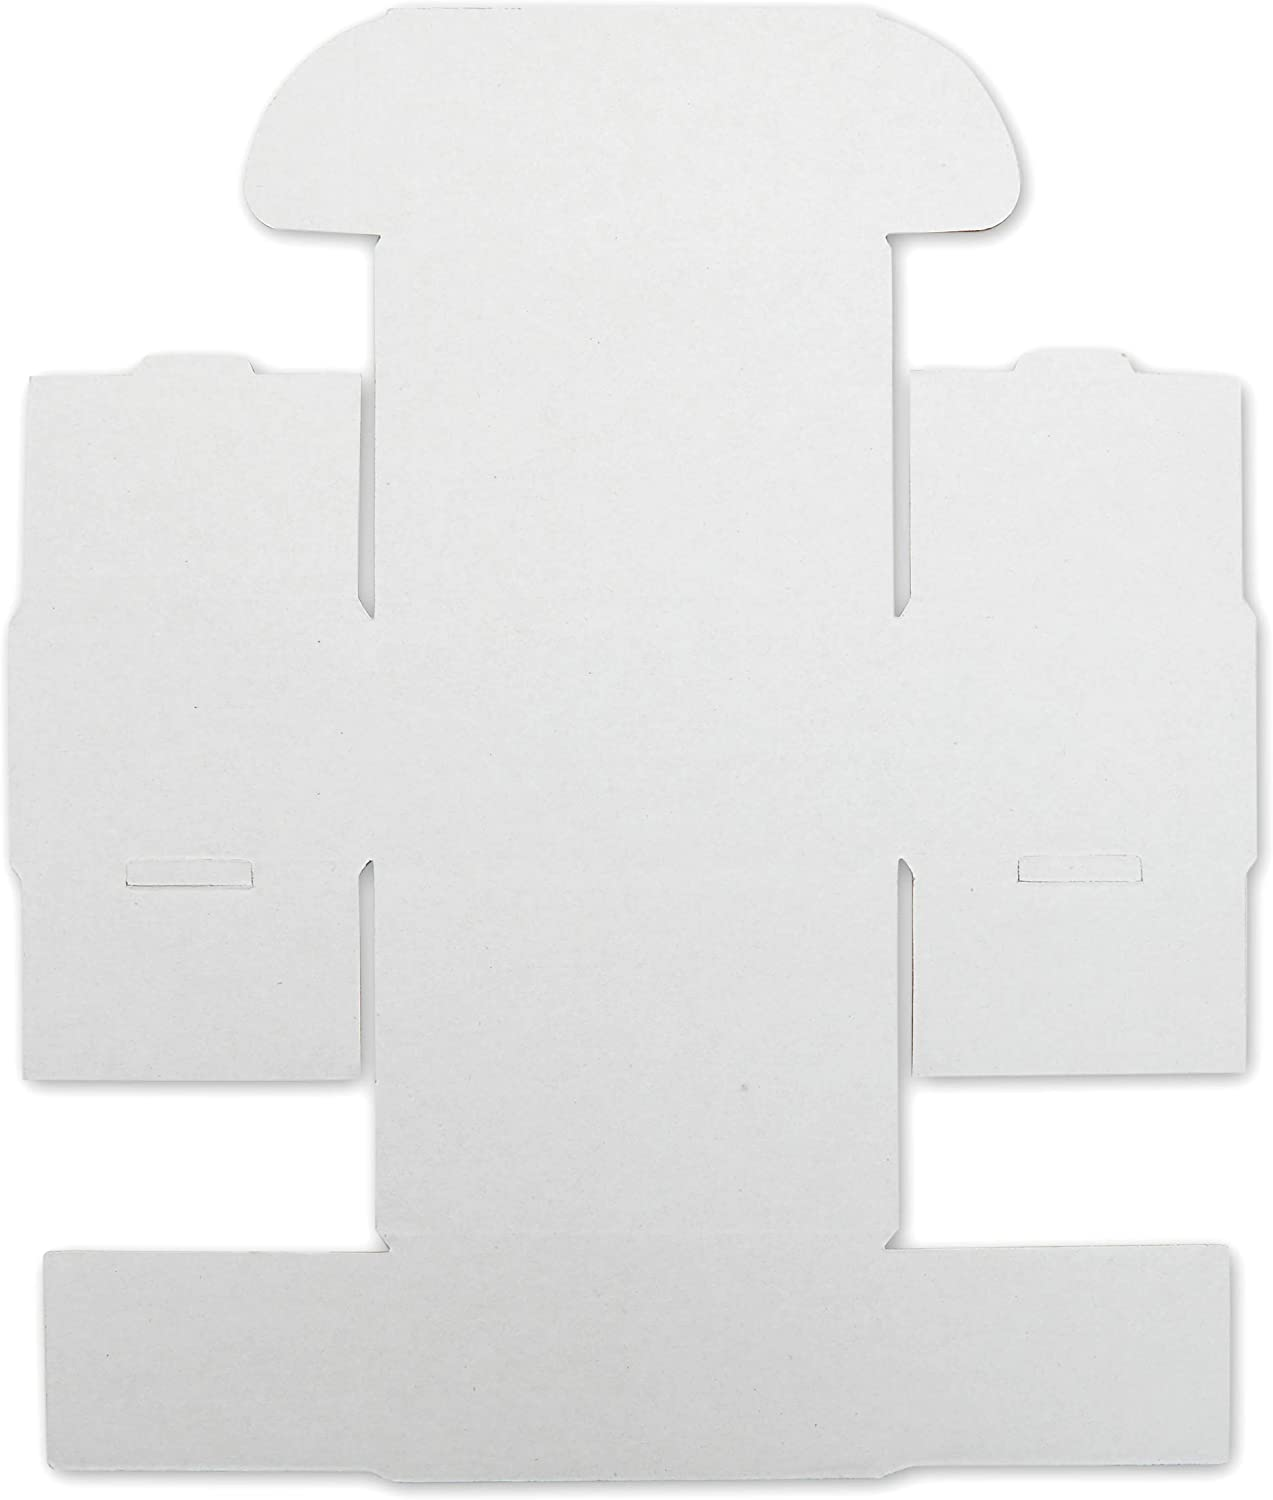 White Corrugated Mailer Boxes Shipping Supplies 3 x 4 x 2 in, 50 Pack